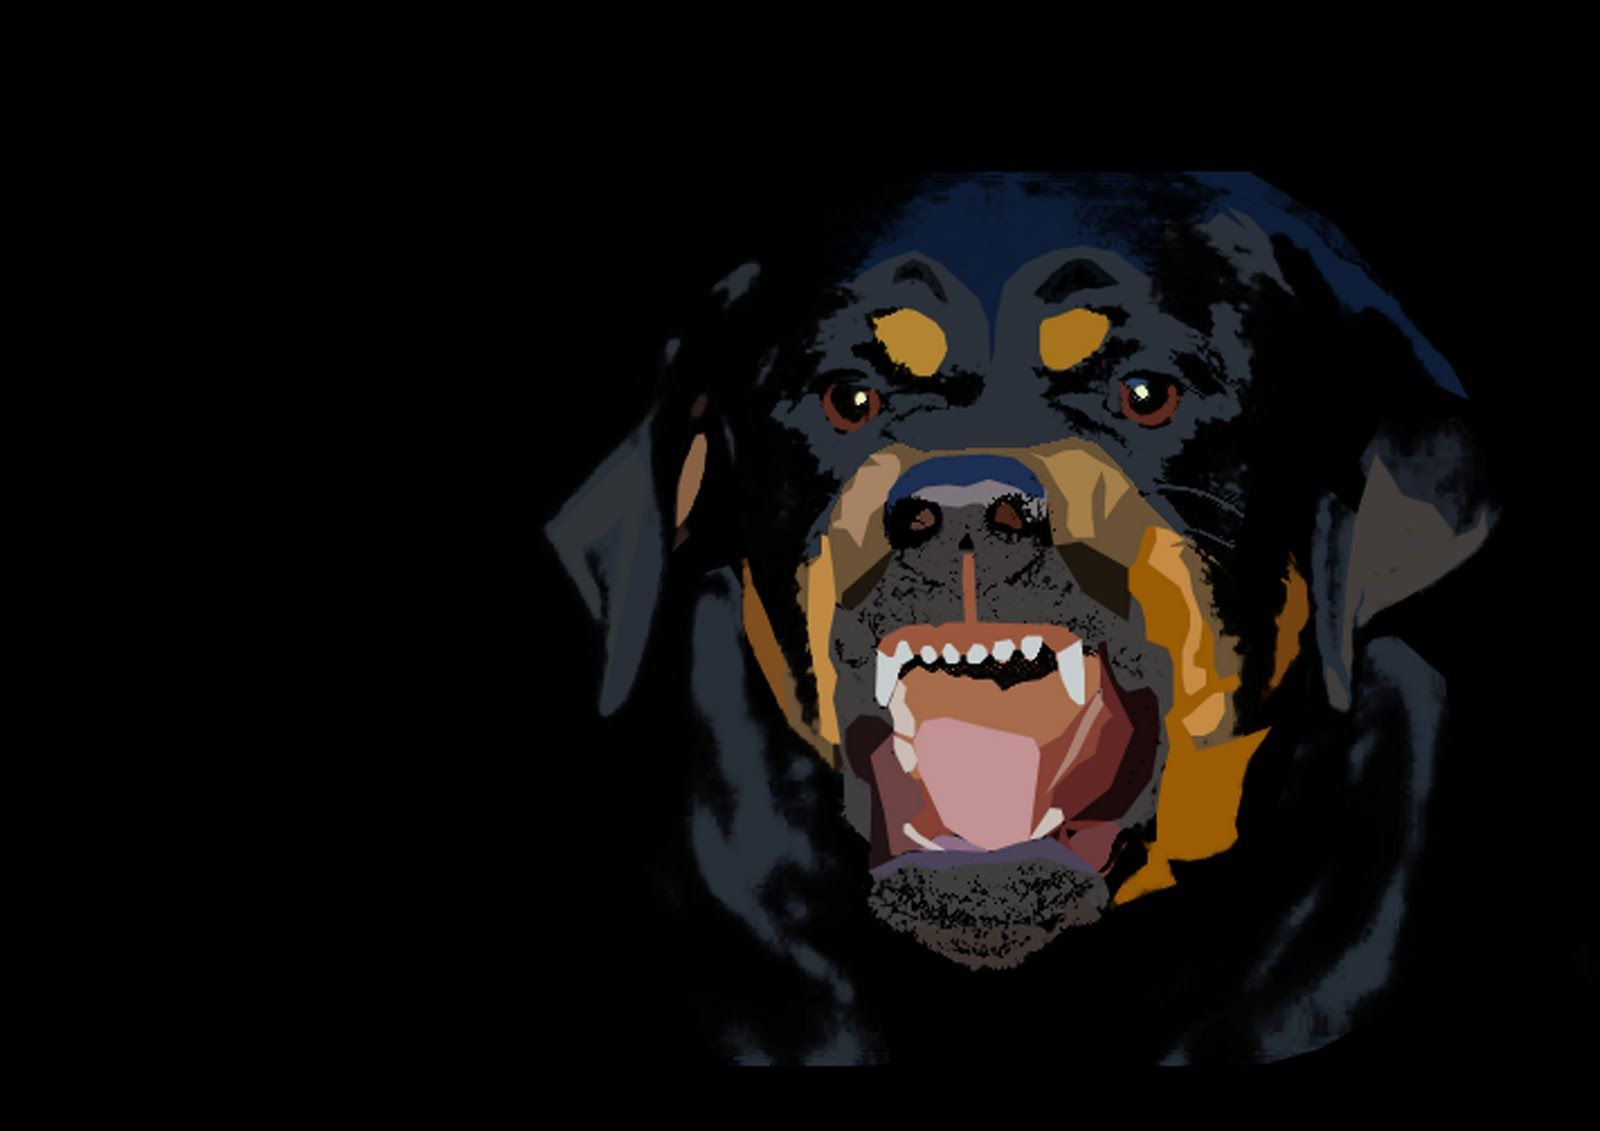 rottweiler wallpaper for my computer wallpapersafari